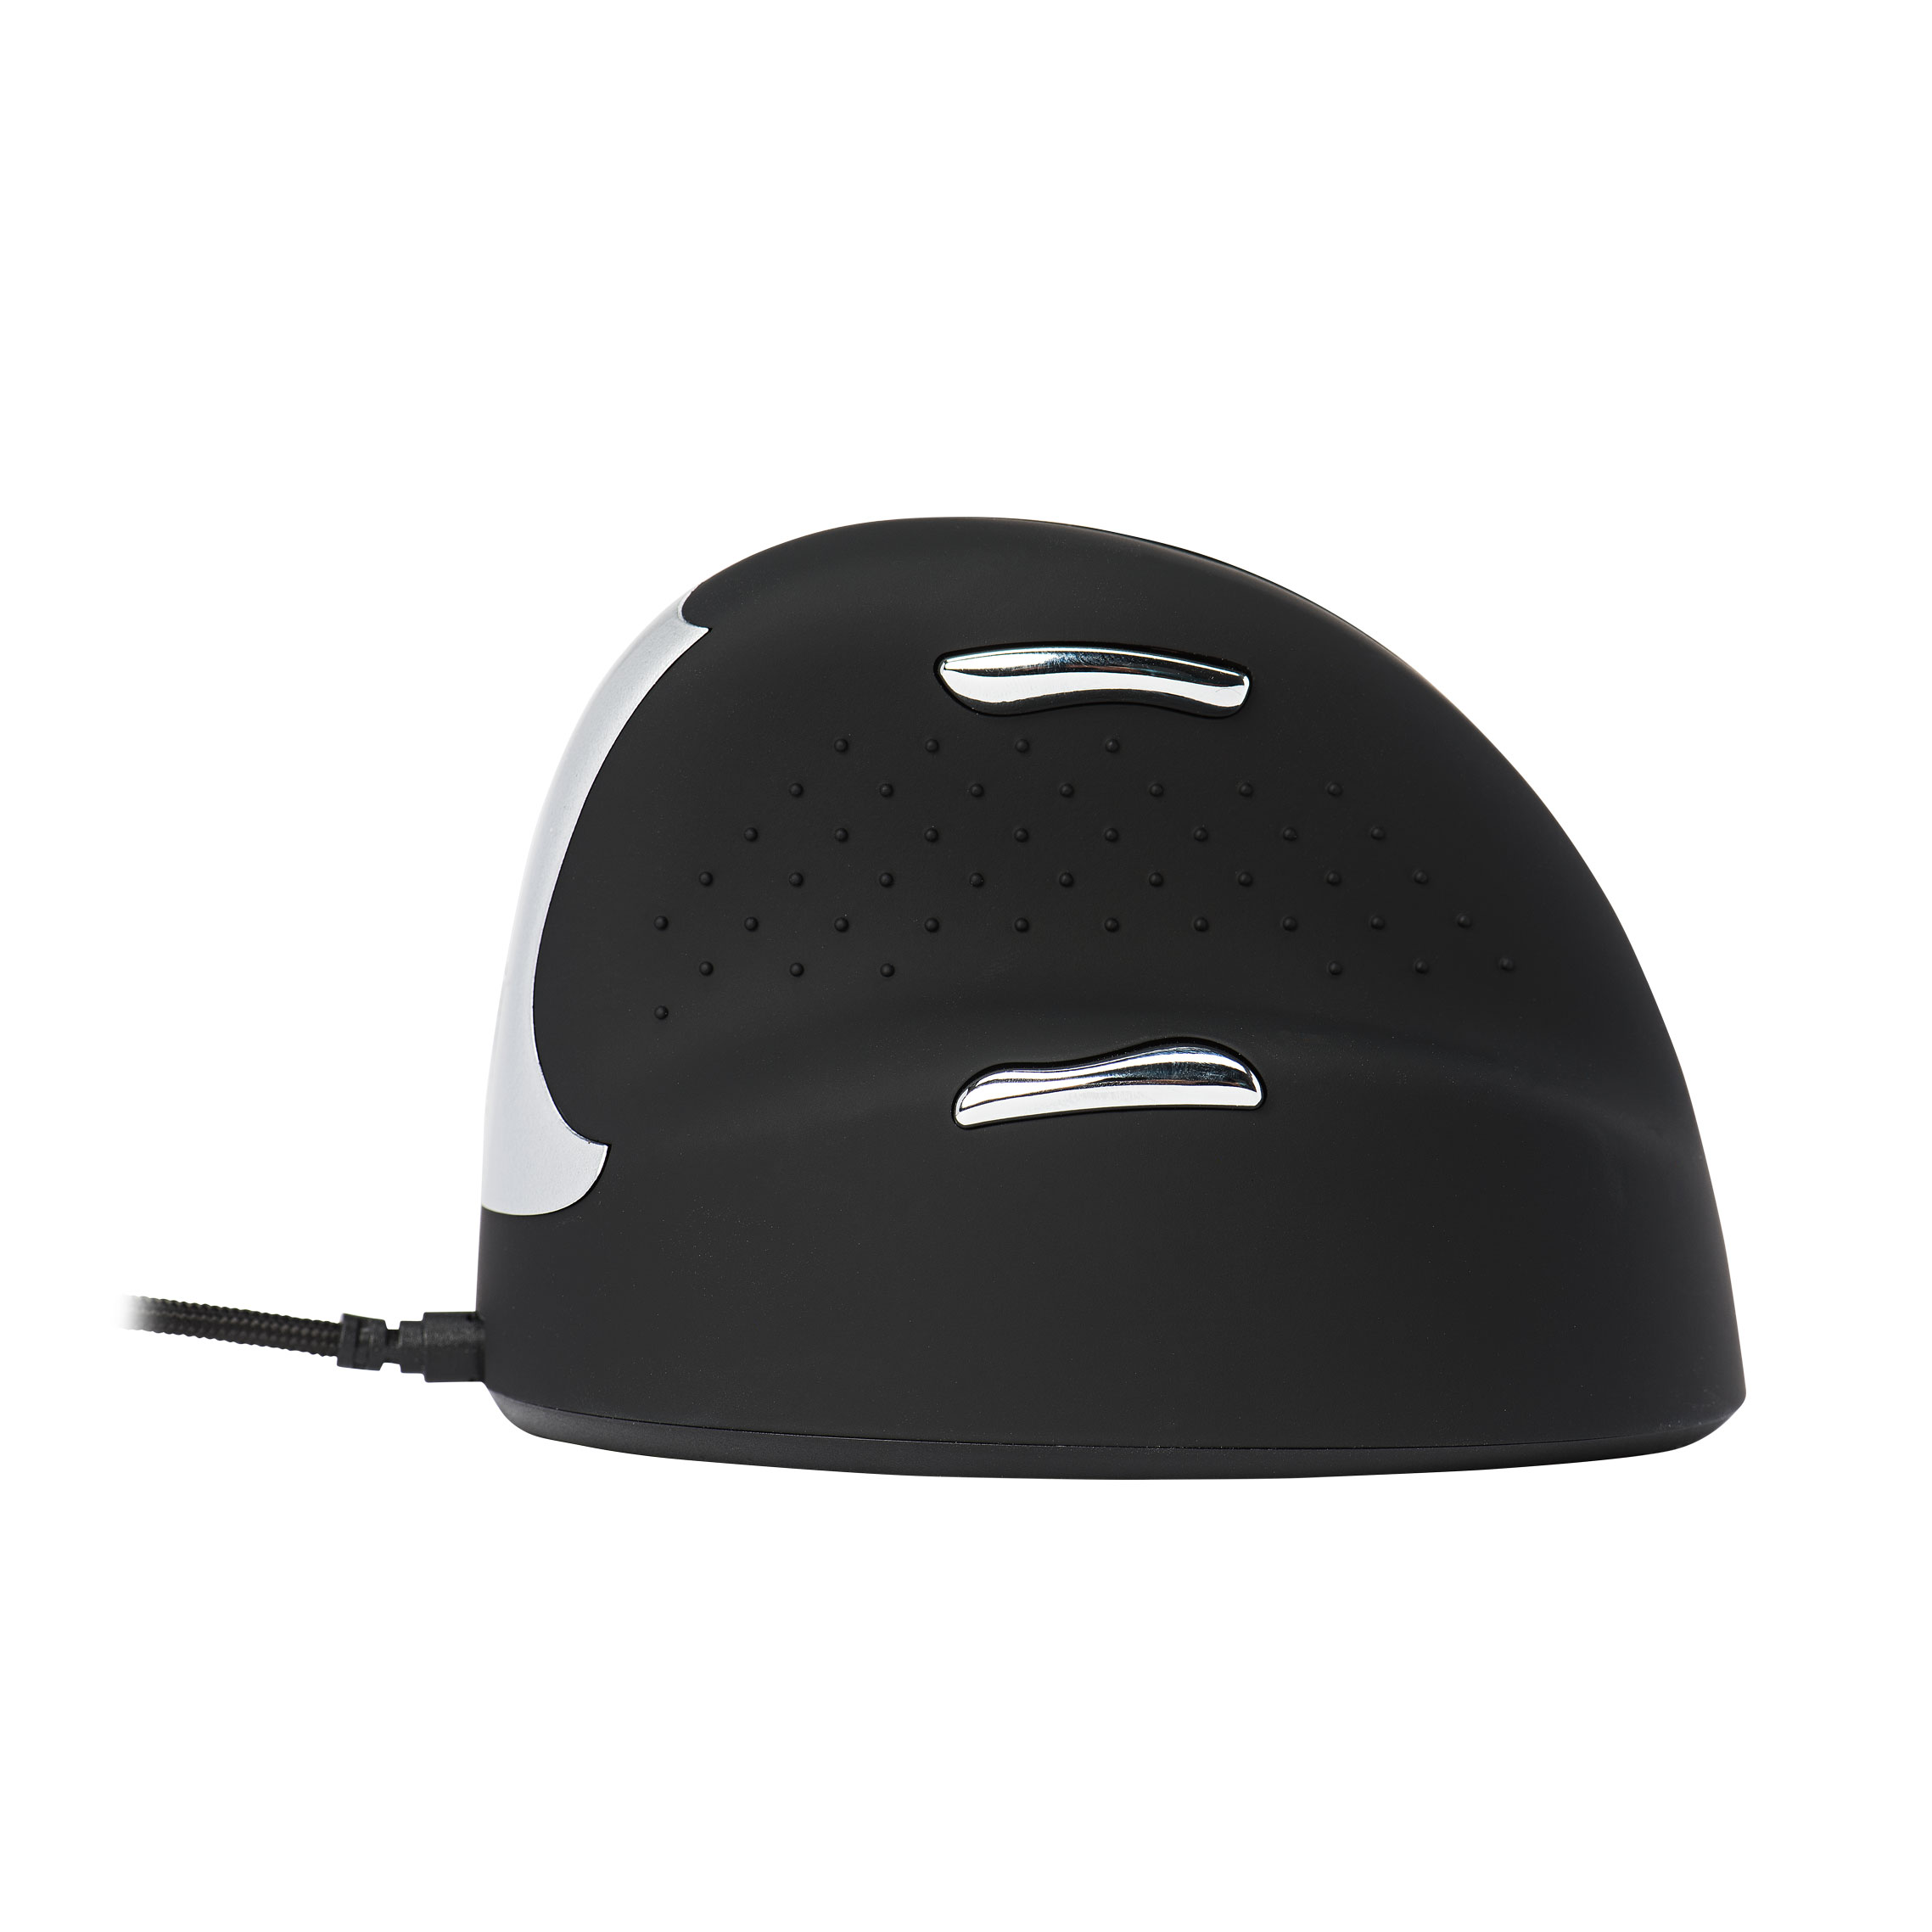 R-Go HE Mouse, Ergonomic mouse, Medium (Hand Size 165-185mm), Right Handed, wired - 5